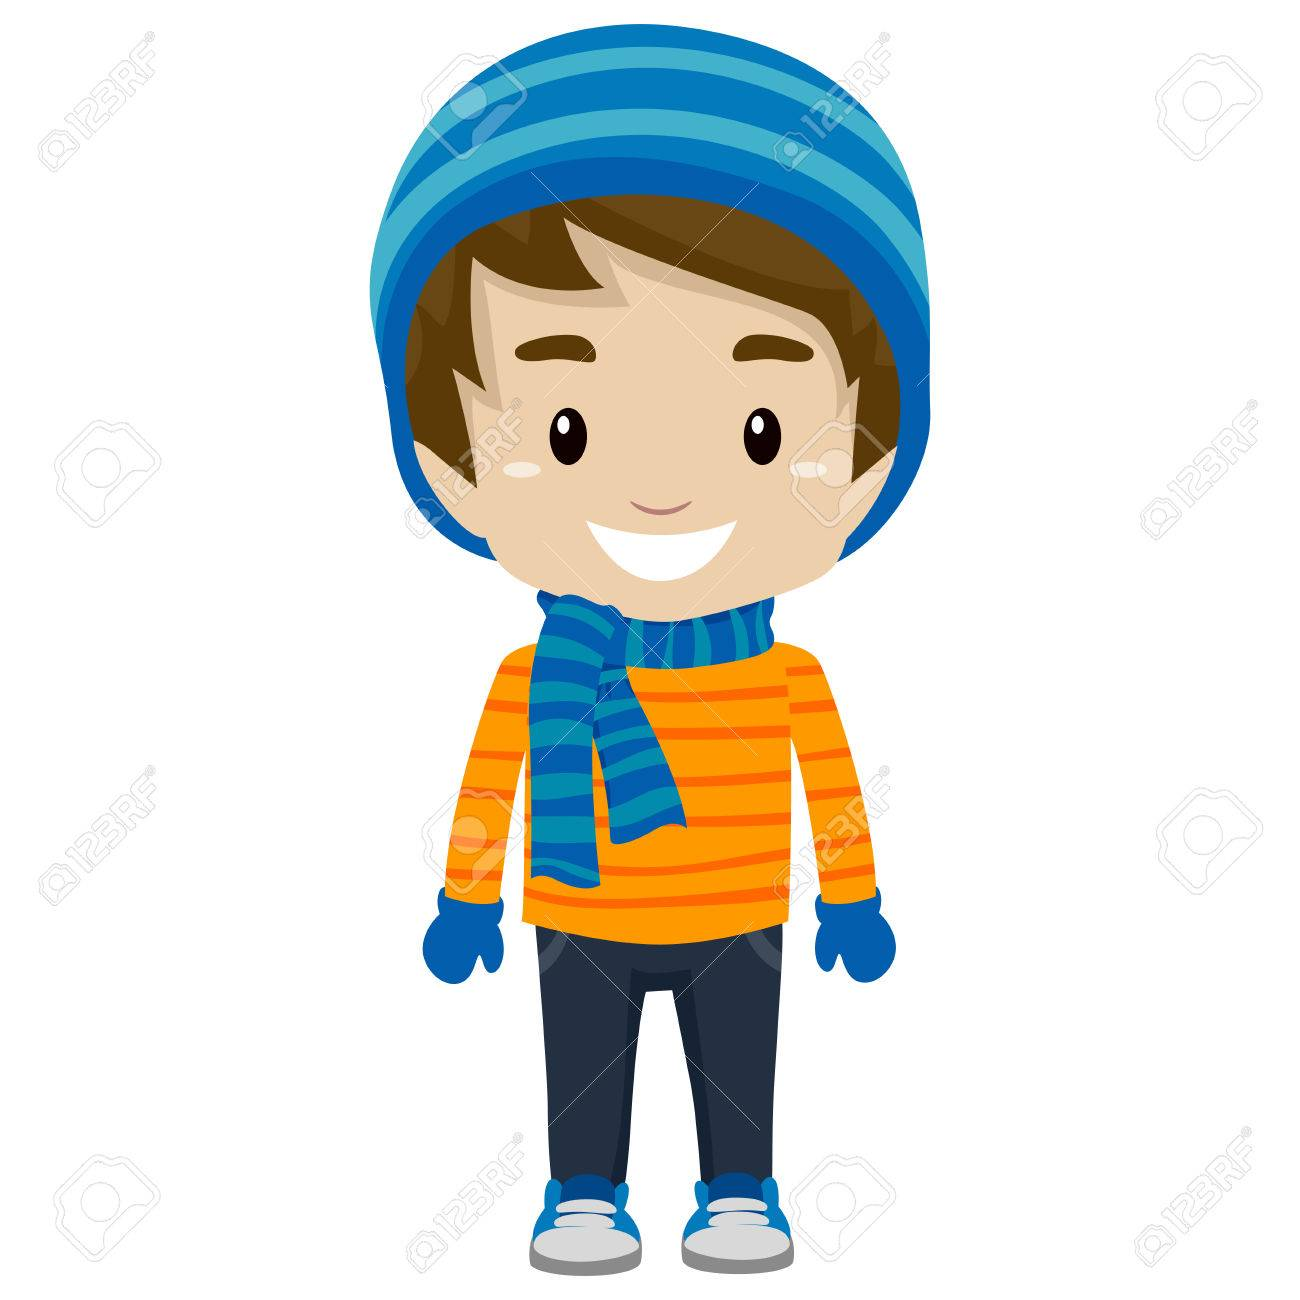 Illustration of Little Boy wearing Winter Clothes.